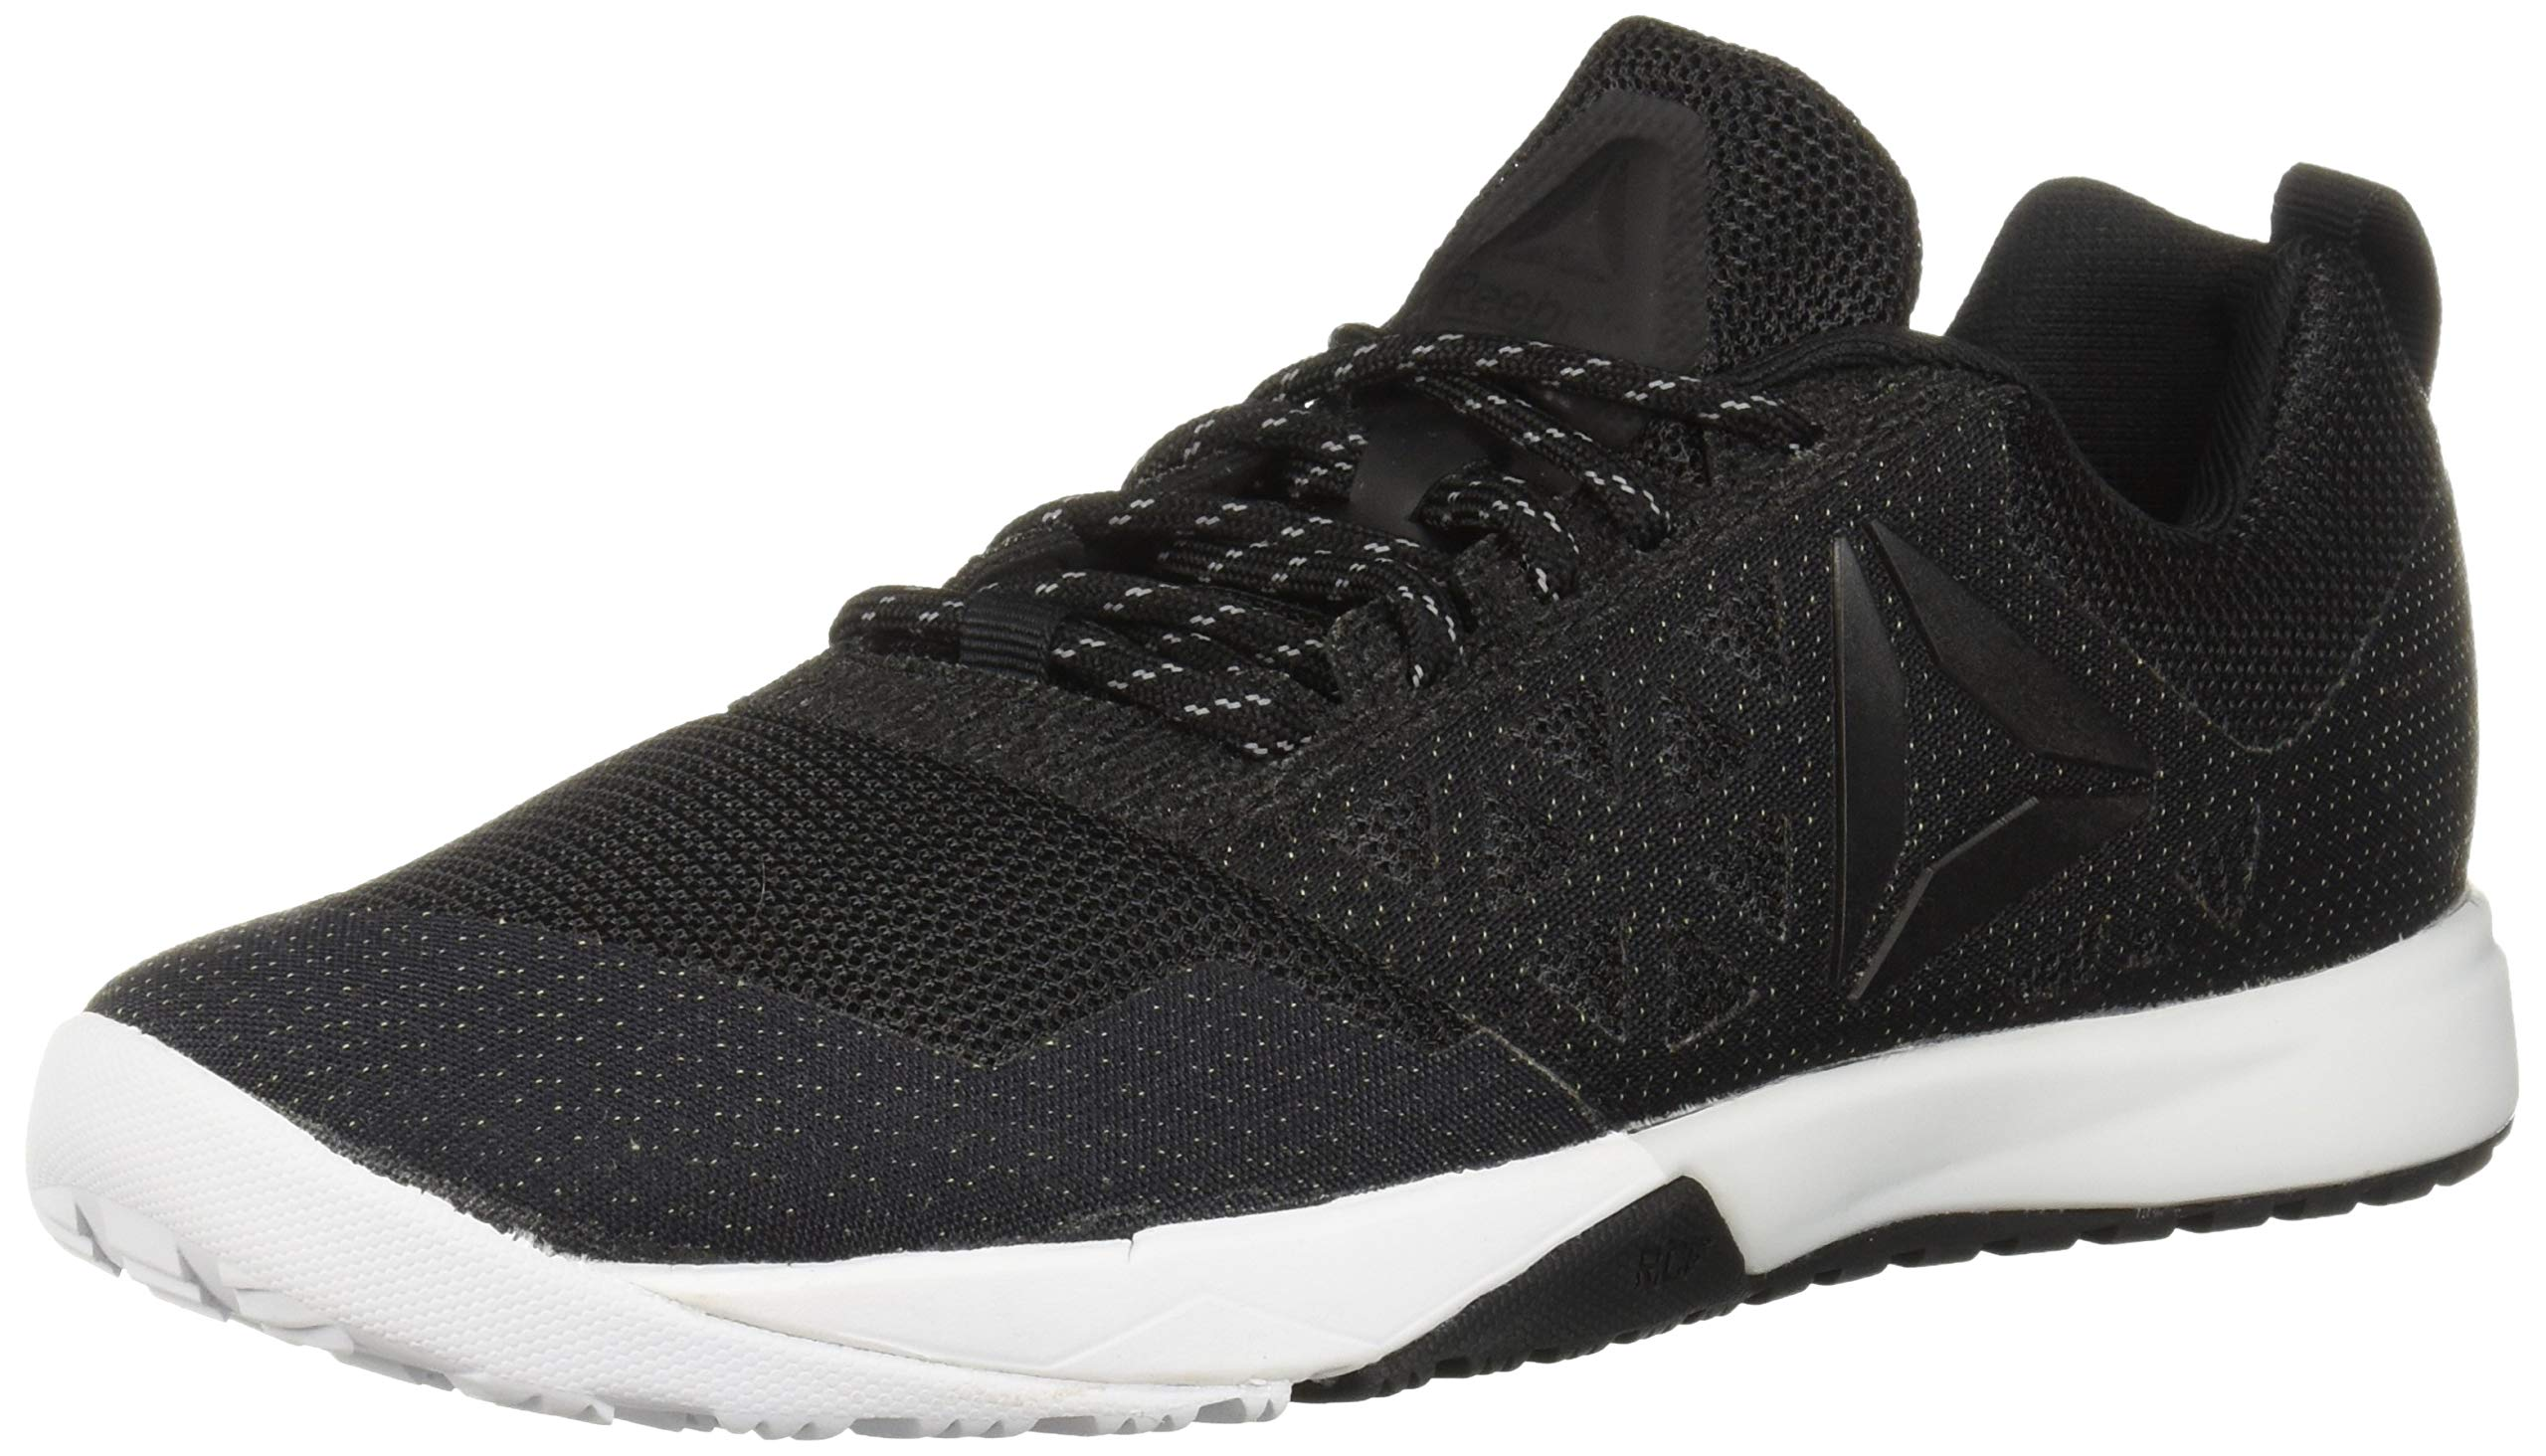 Reebok Women's CROSSFIT Nano 6.0 Cvrt Cross Trainer, Black/White, 5 M US by Reebok